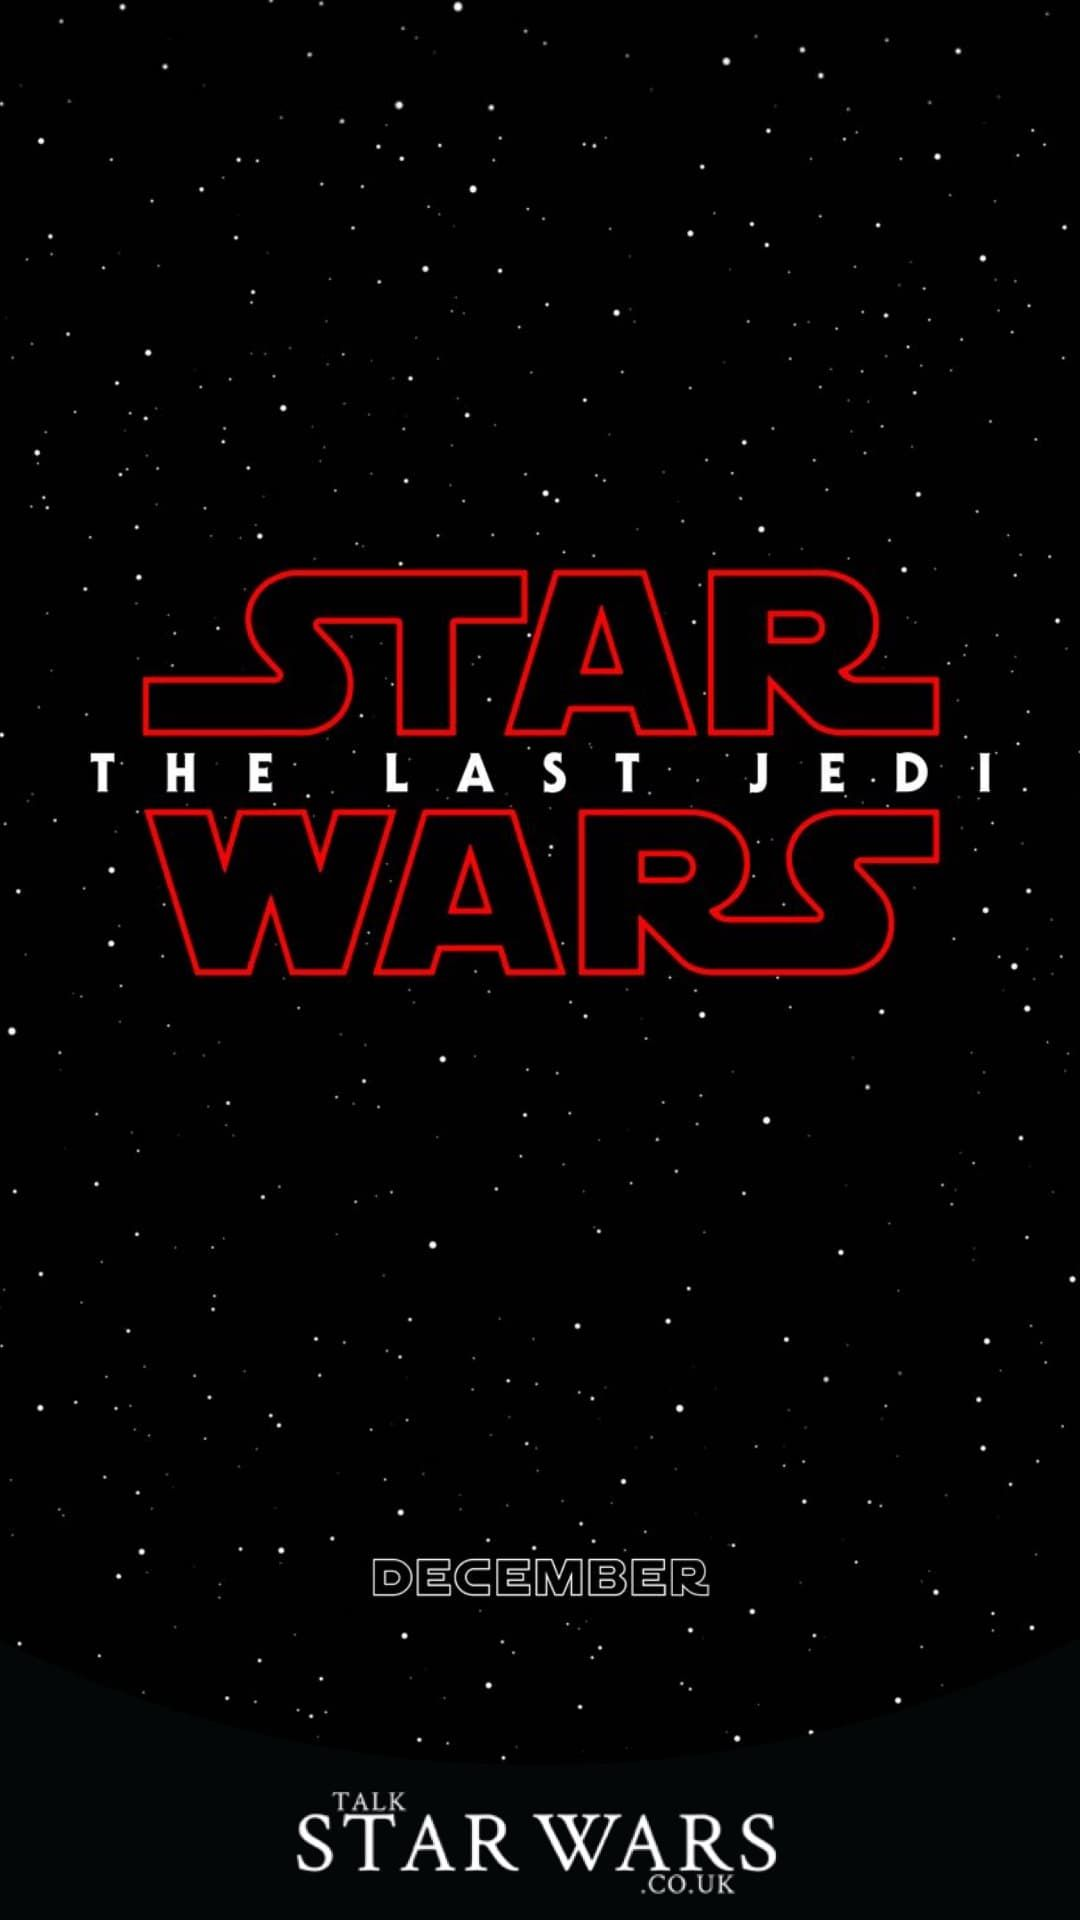 Http Mobw Org 15556 The Last Jedi Iphone Wallpaper Html The Last Jedi Iphone Wallpaper Plus Size Disney New Poster Star Wars Movie